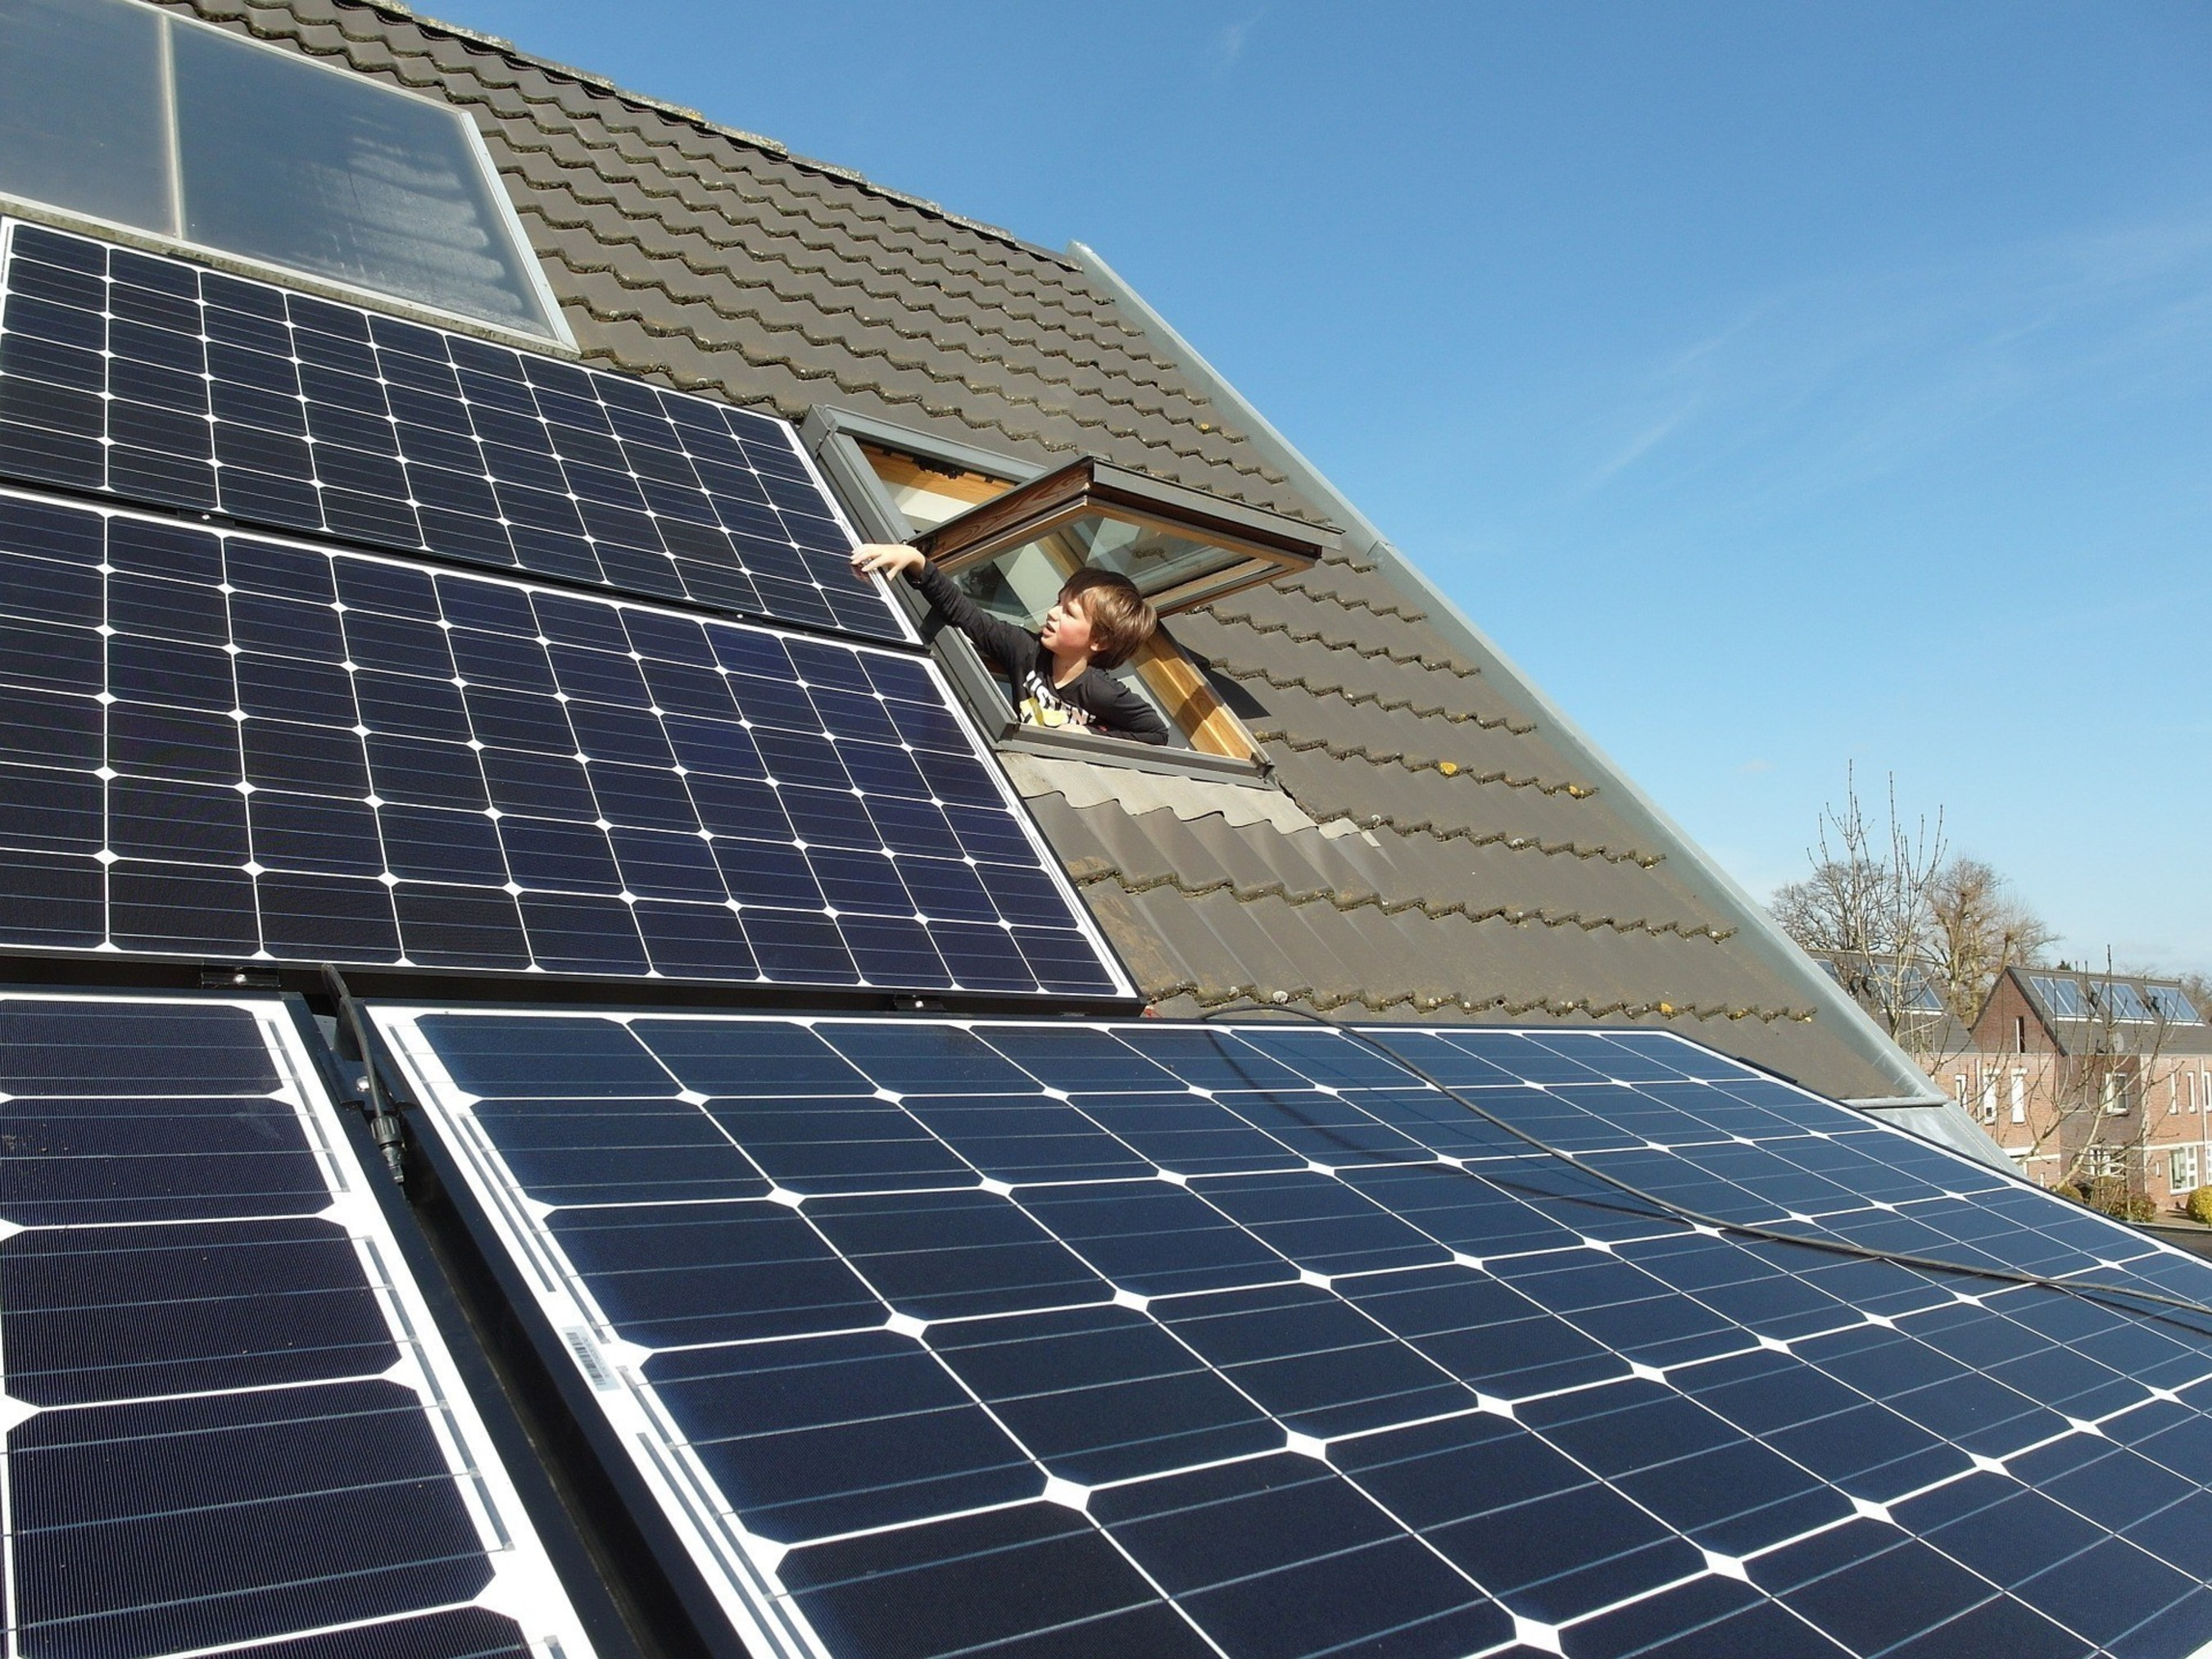 A new report by AEE Institute shows that renewable resources, like this residential solar energy system, and energy efficiency are a cost-effective solution as states prepare to implement EPA's Clean Power Plan.